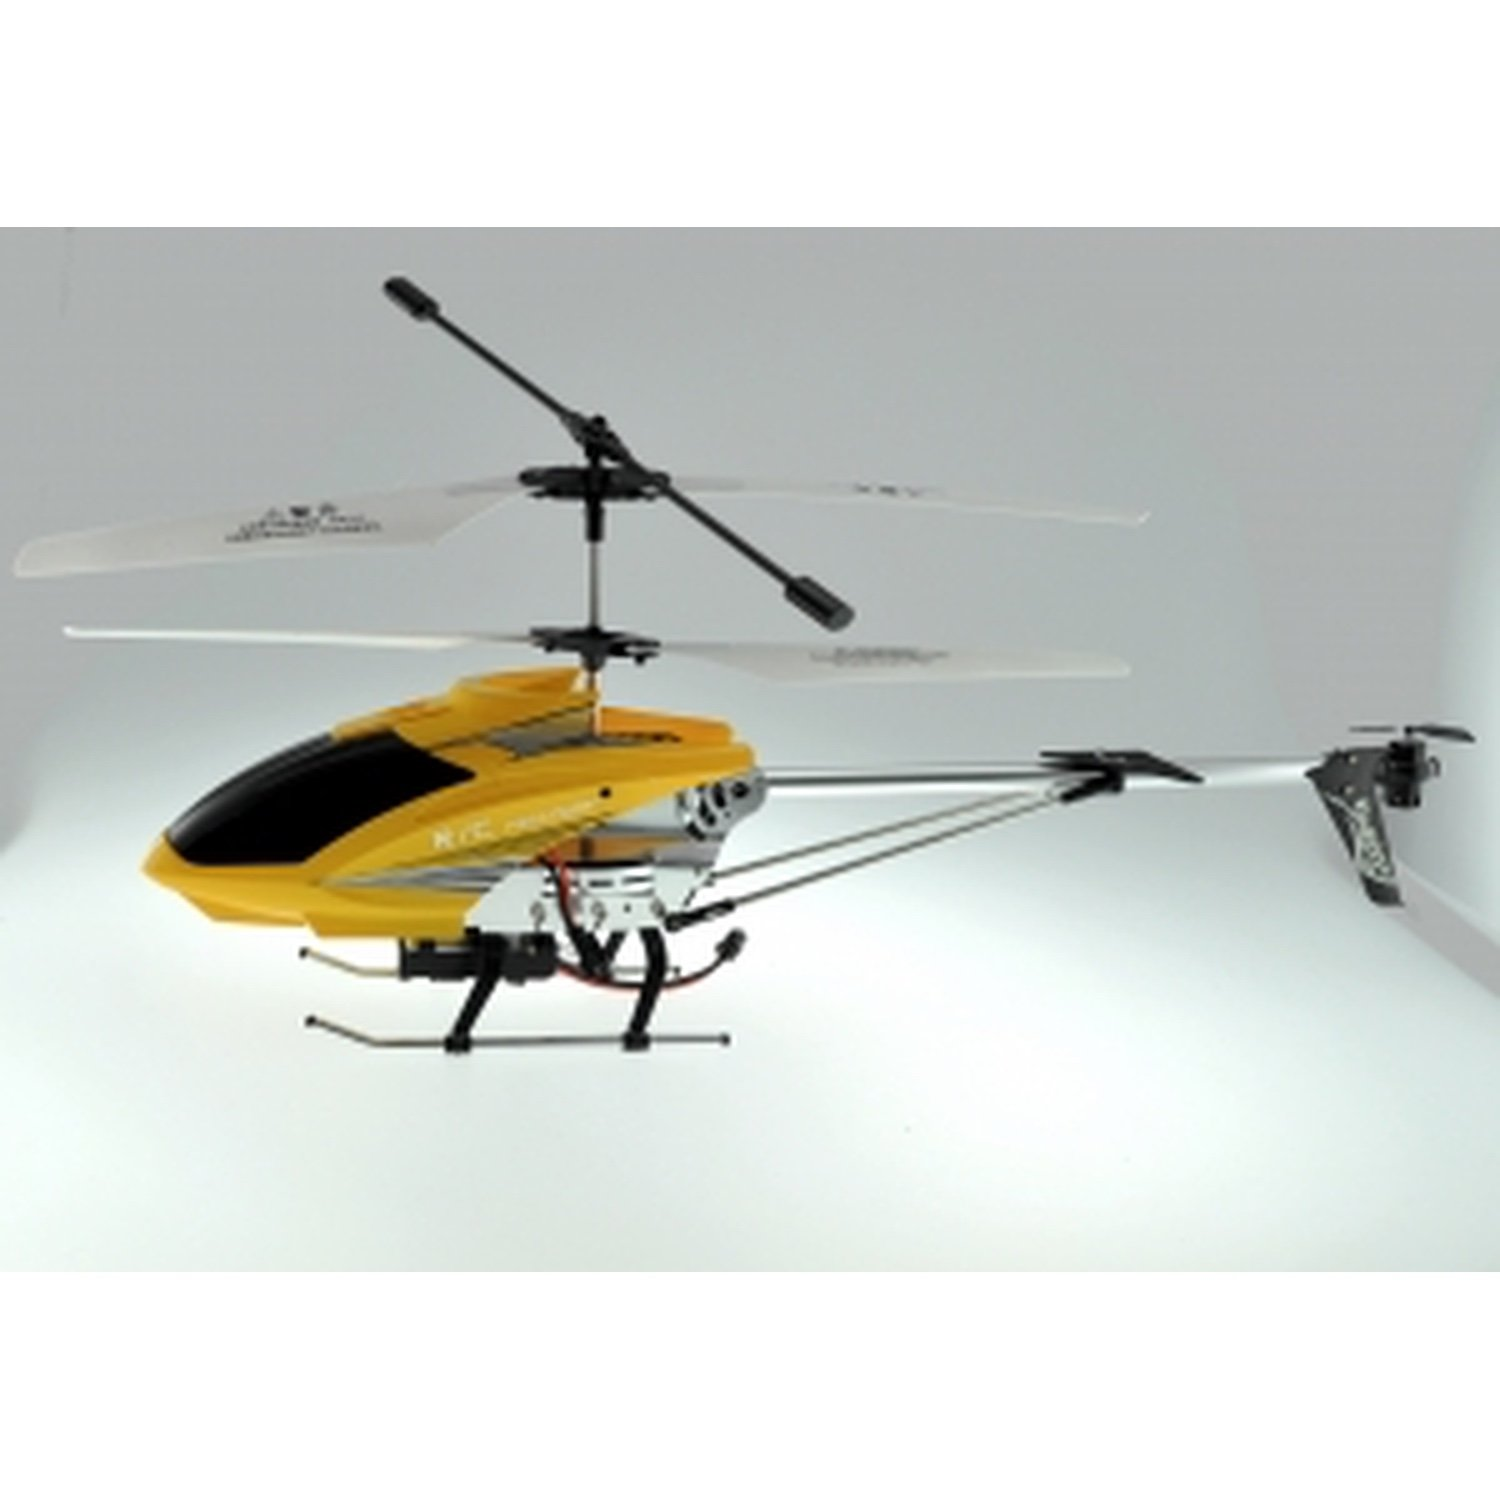 RC HELICOPTER MODEL RC9663 3.5 CHANEL, GYROSCOPE, METALLIC ALLOY